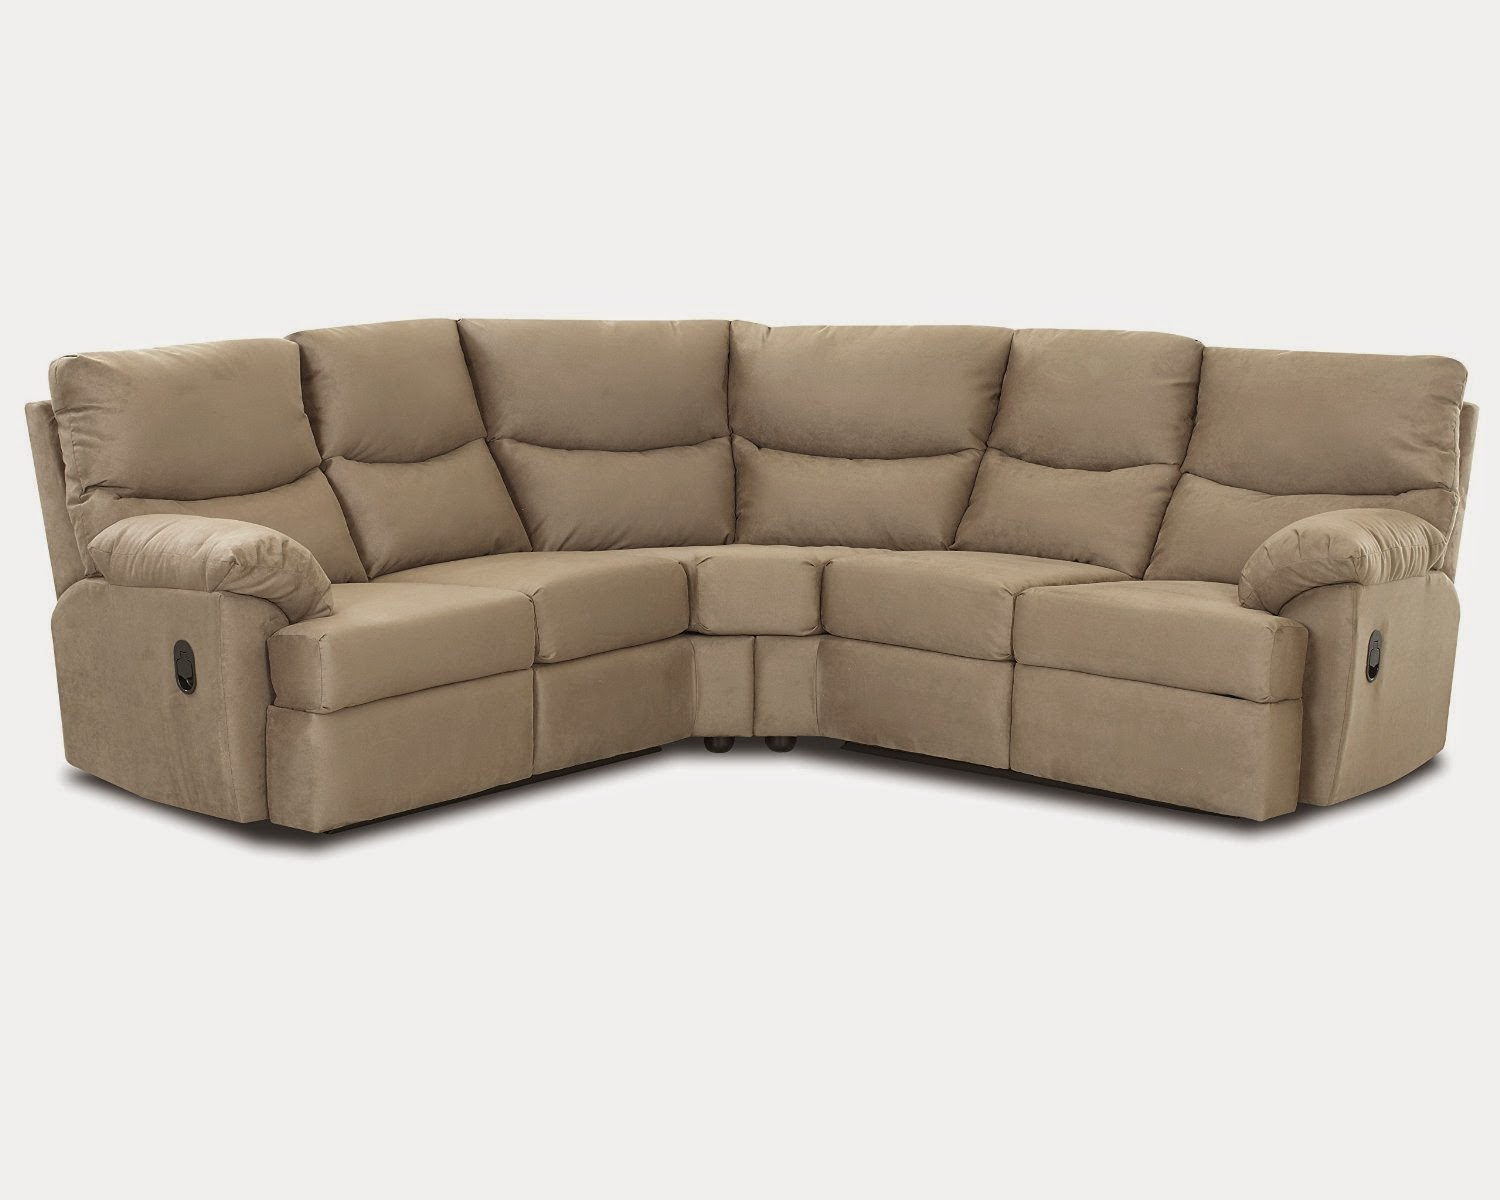 Sofas That Recline Home Leather Reclining Sofa Theater